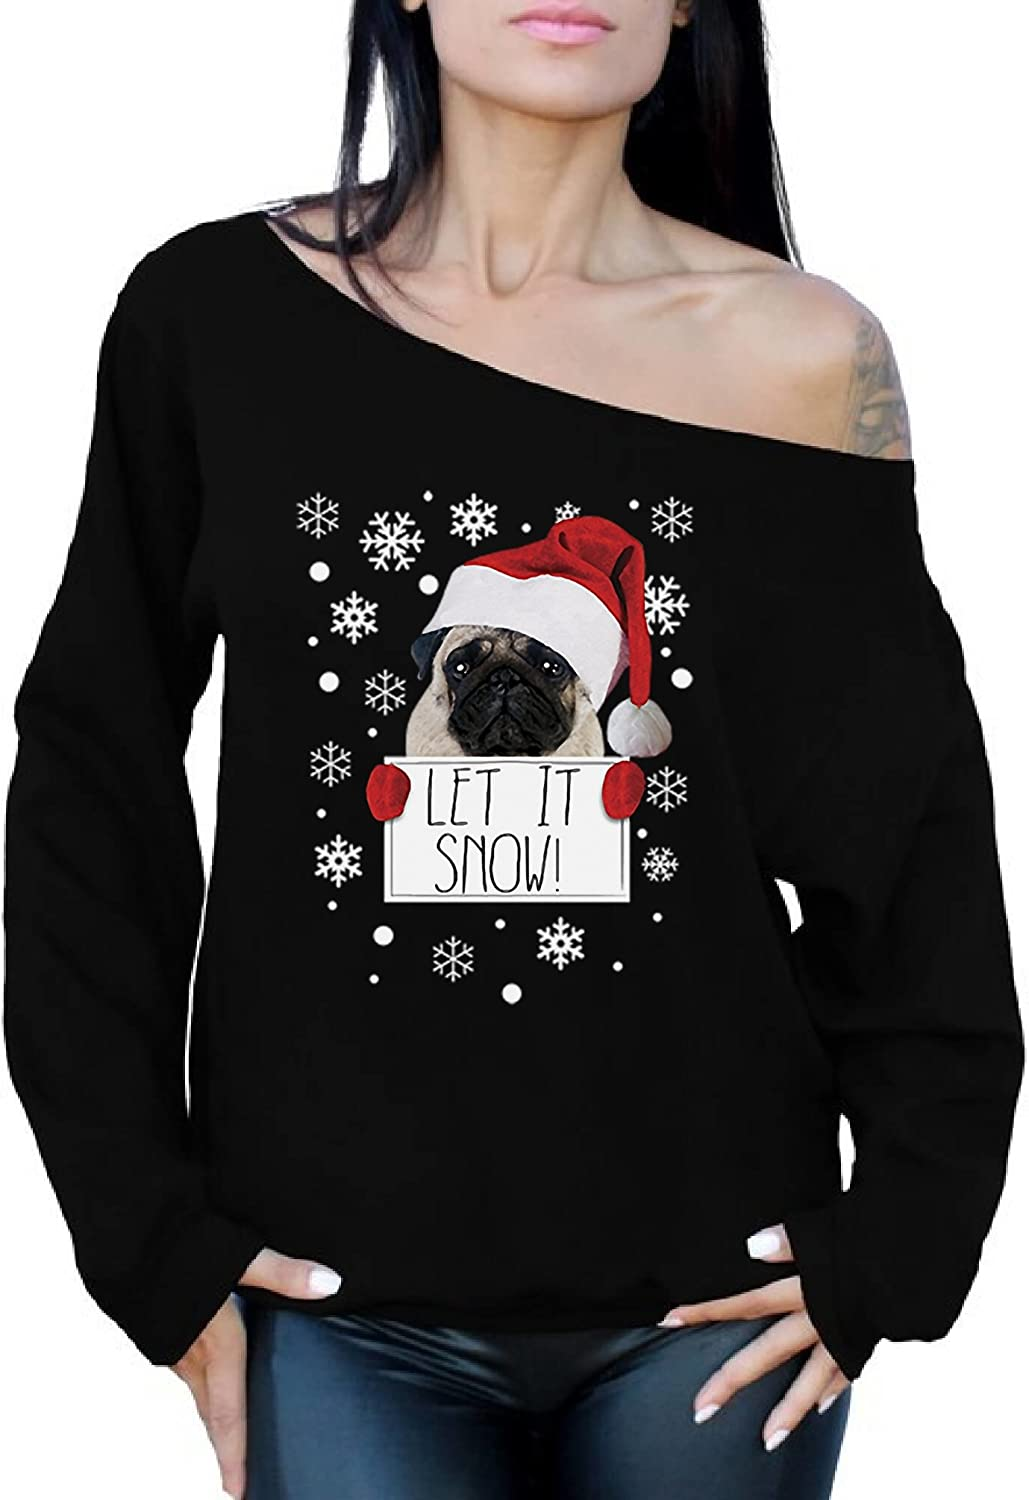 Awkward Styles Let it Snow Sweatshirt Christmas Pug Off The Shoulder Top Ugly Christmas Sweater